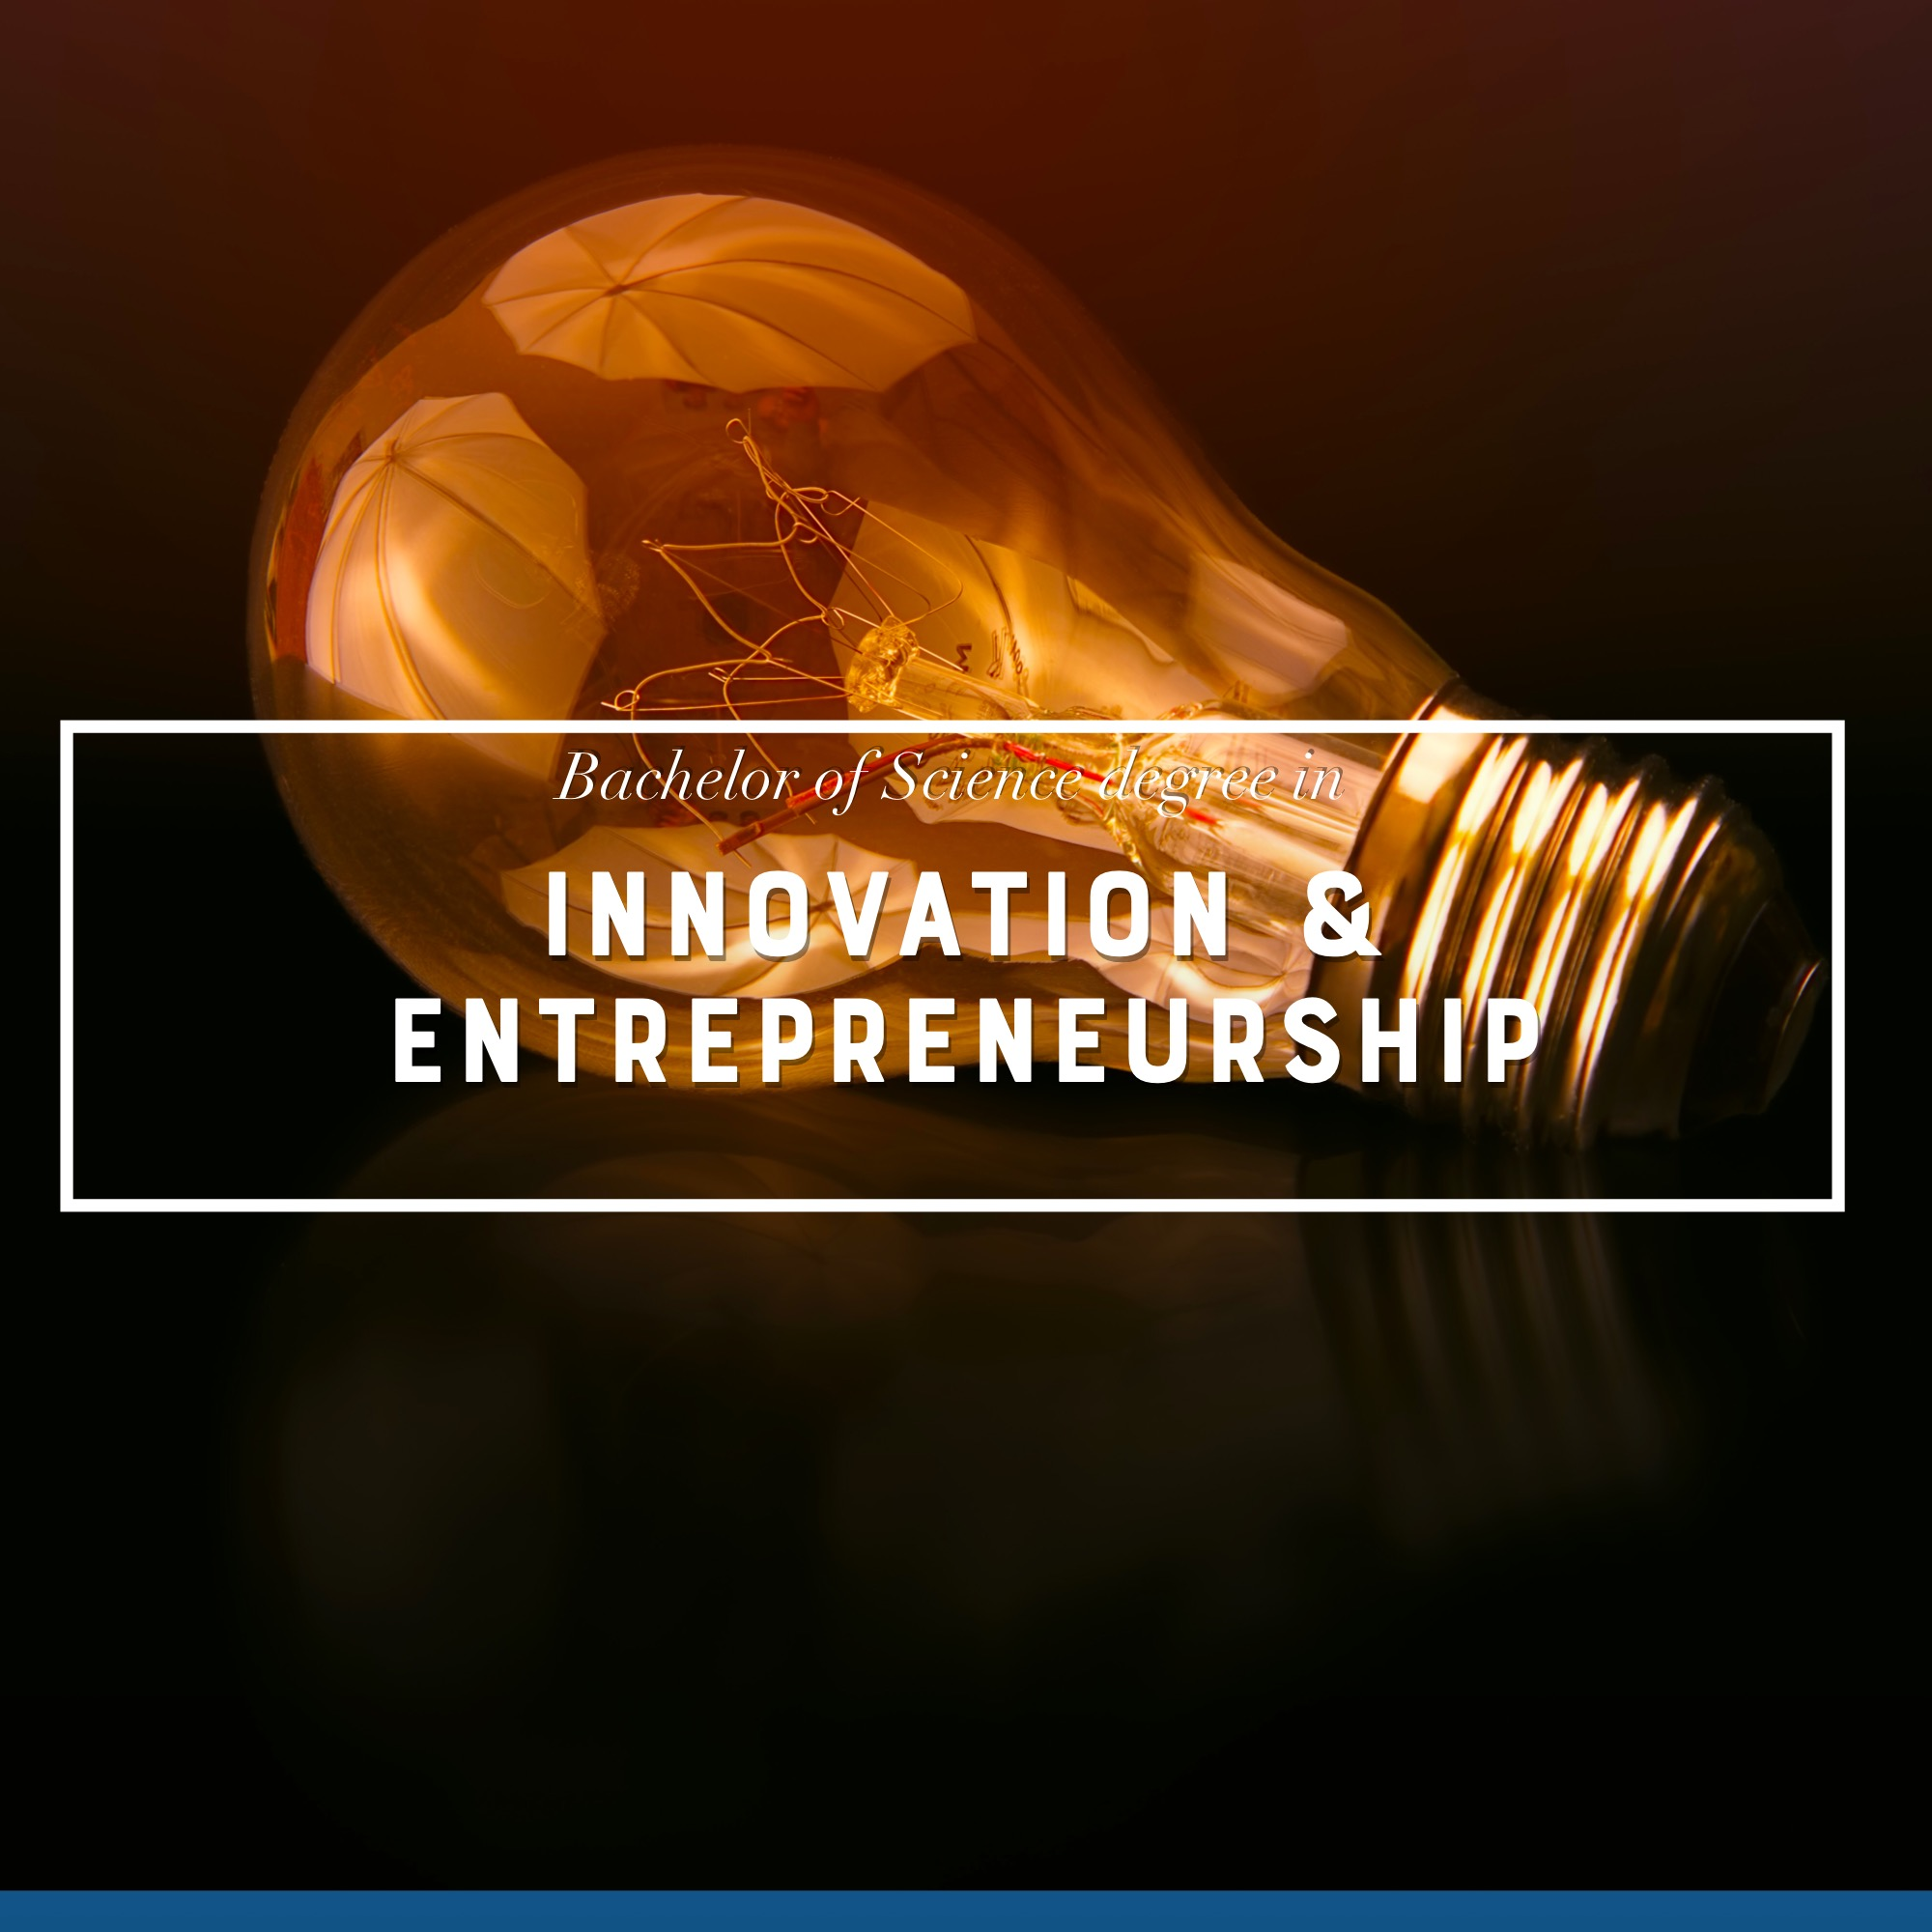 Learn more about the Innovation & Entrepreneurship Programme